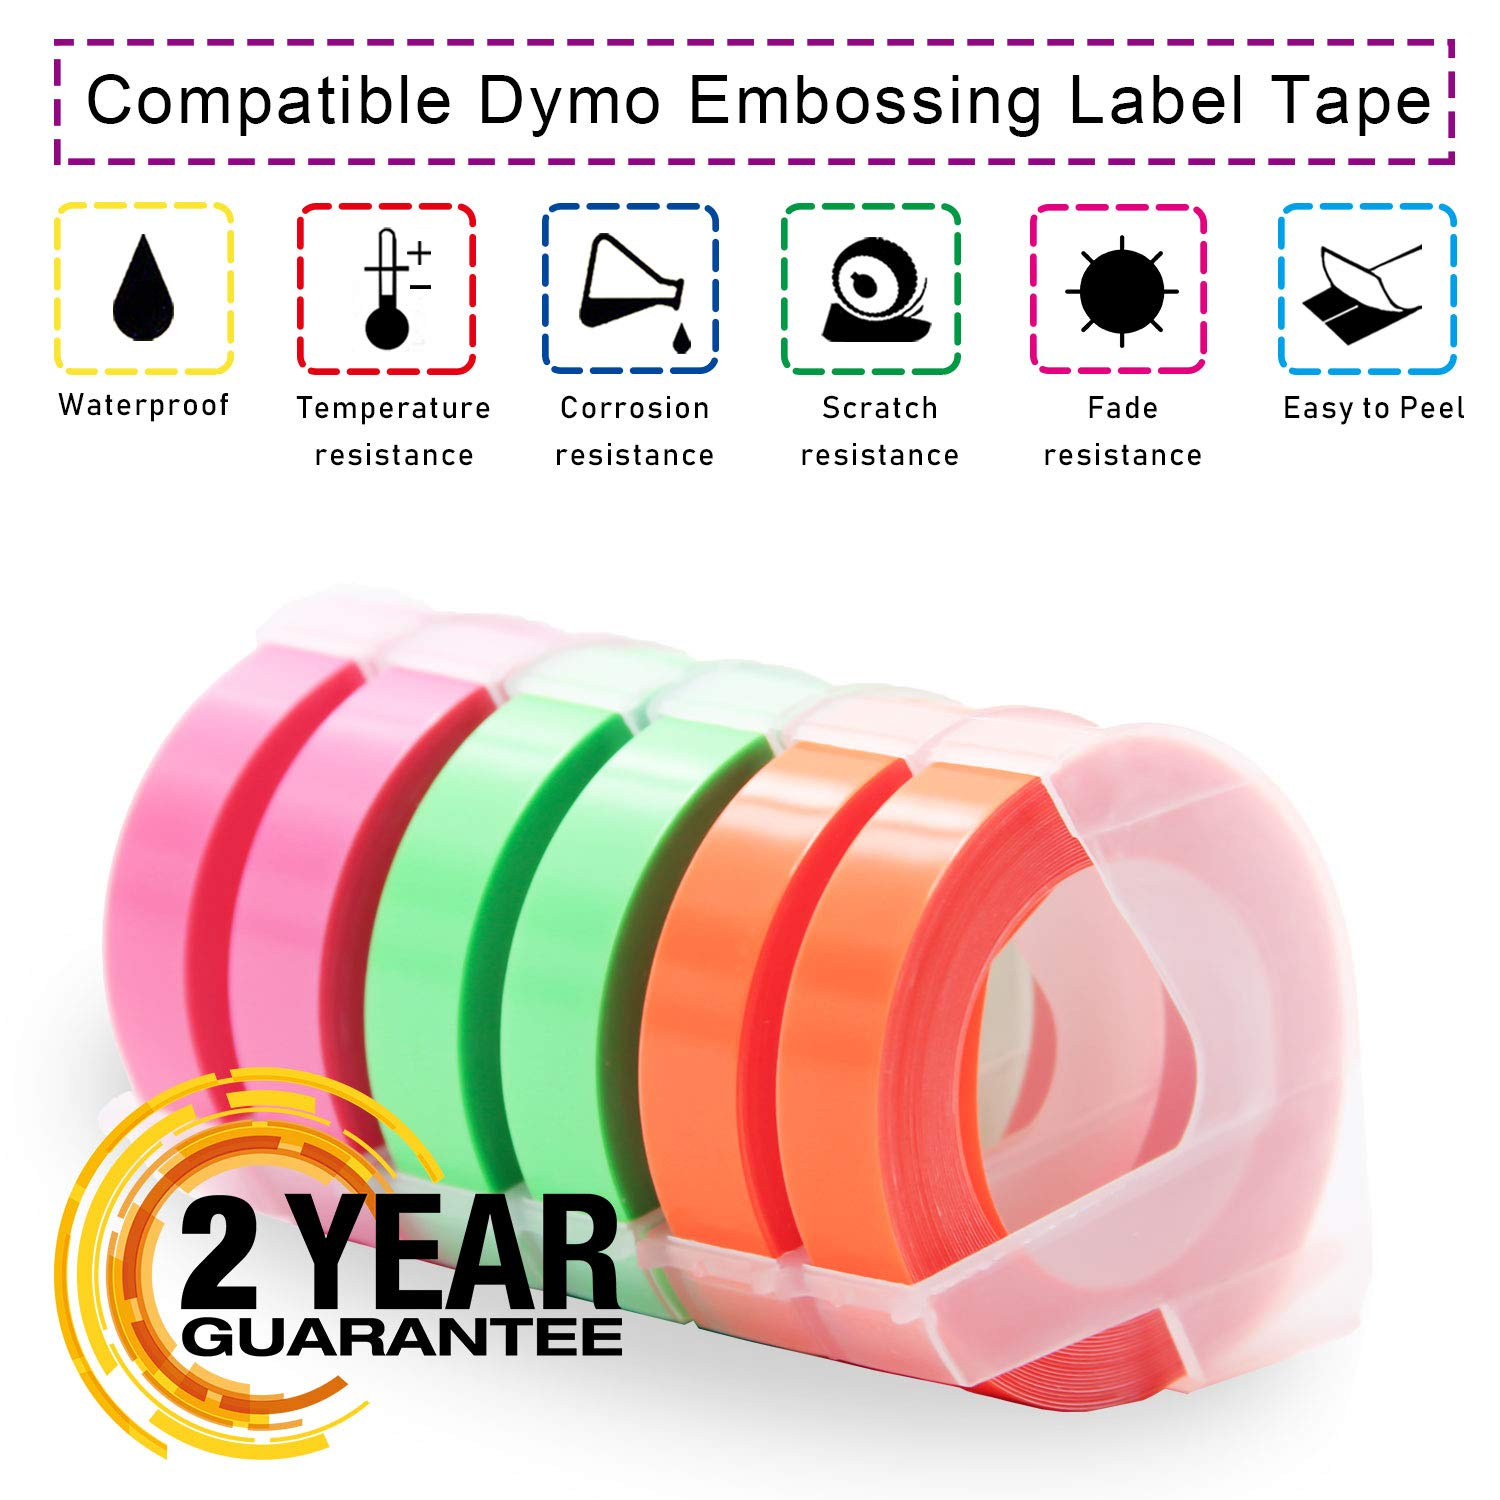 Pristar Compatible Dymo Embossing Tape 3D Plastic Label for DYMO Embossing Label Makers Office Mate II, Organizer Xpress Pro, LabelManager 1610, 3/8'' x 9.8', White Print on Neon Pink, 5 Rolls/Pack by Pristar (Image #6)